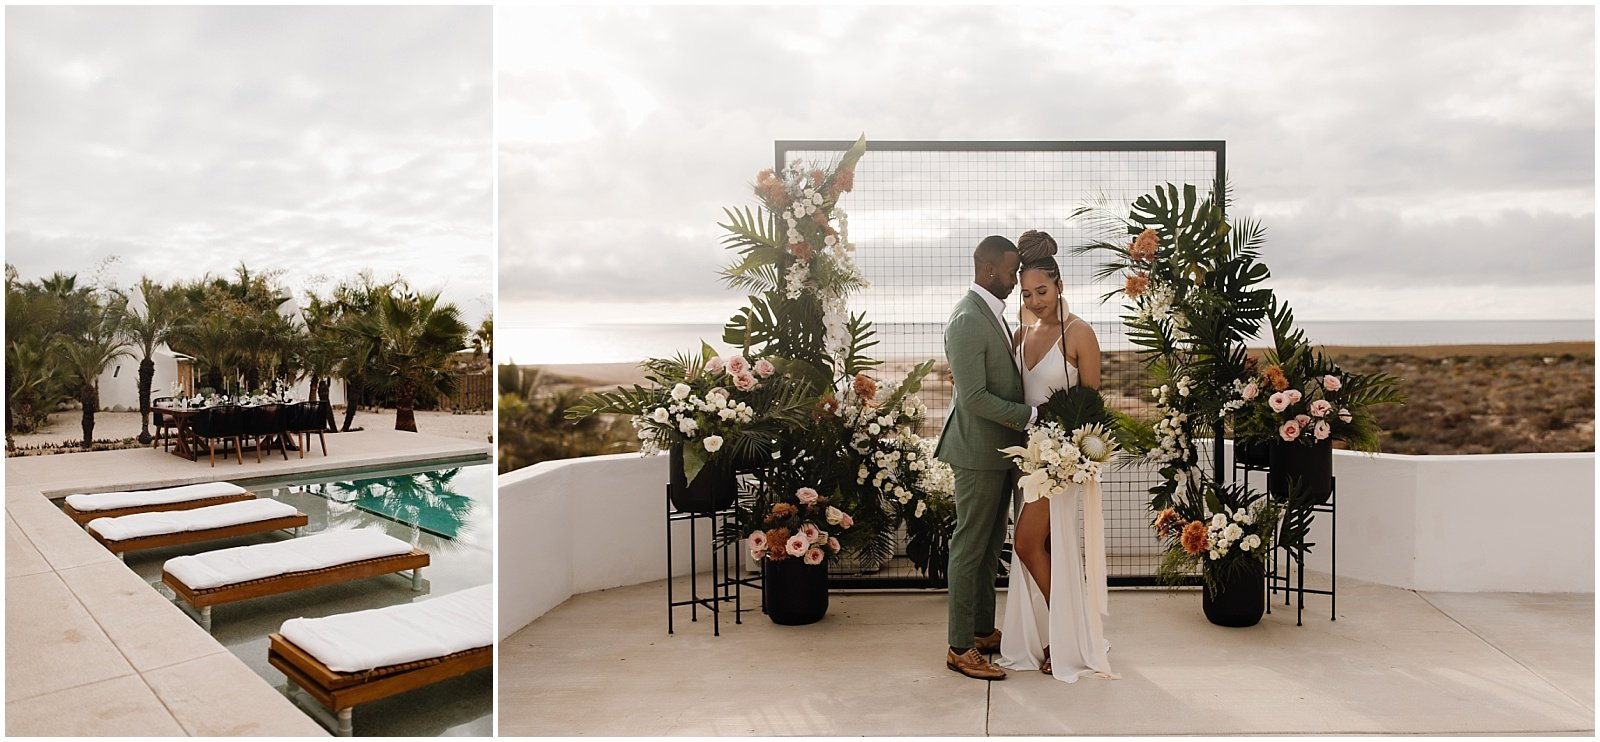 Bride and groom standing in front of a modern and tropical wedding ceremony backdrop at Pachamama Resort in Todos Santos, Mexico